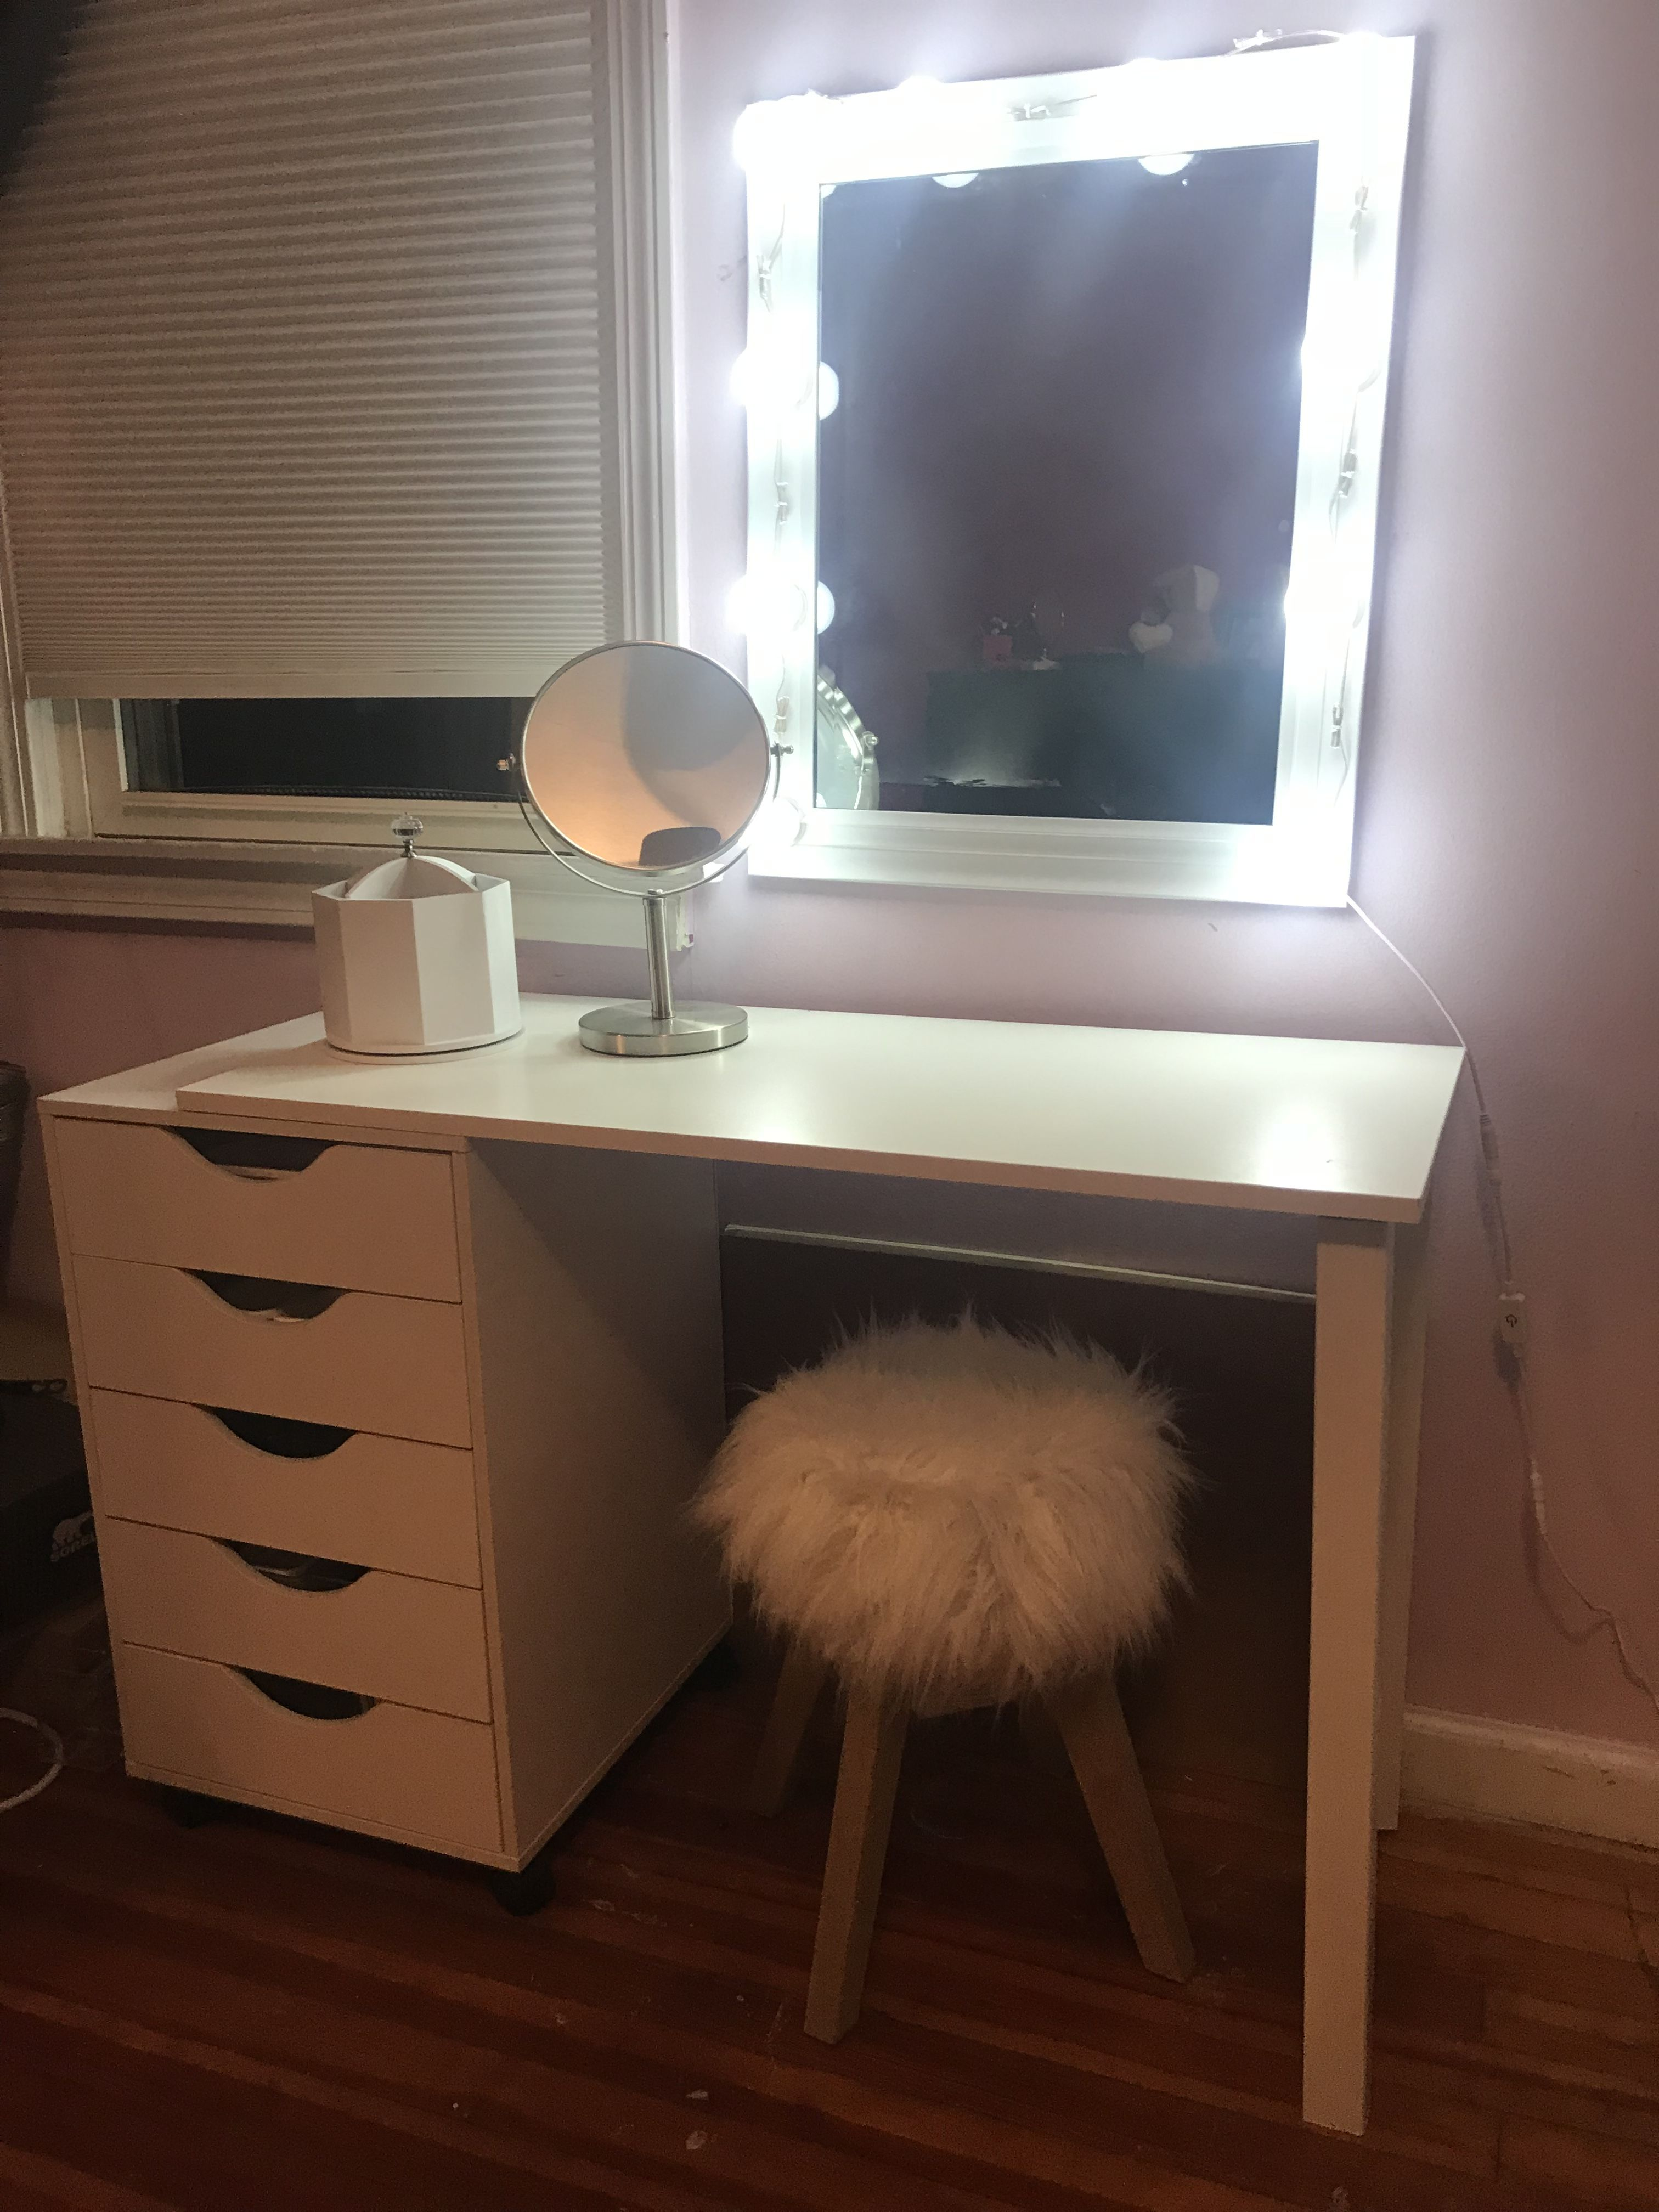 Diy Vanity I Made This Vanity For My Daughter I Used Michaels